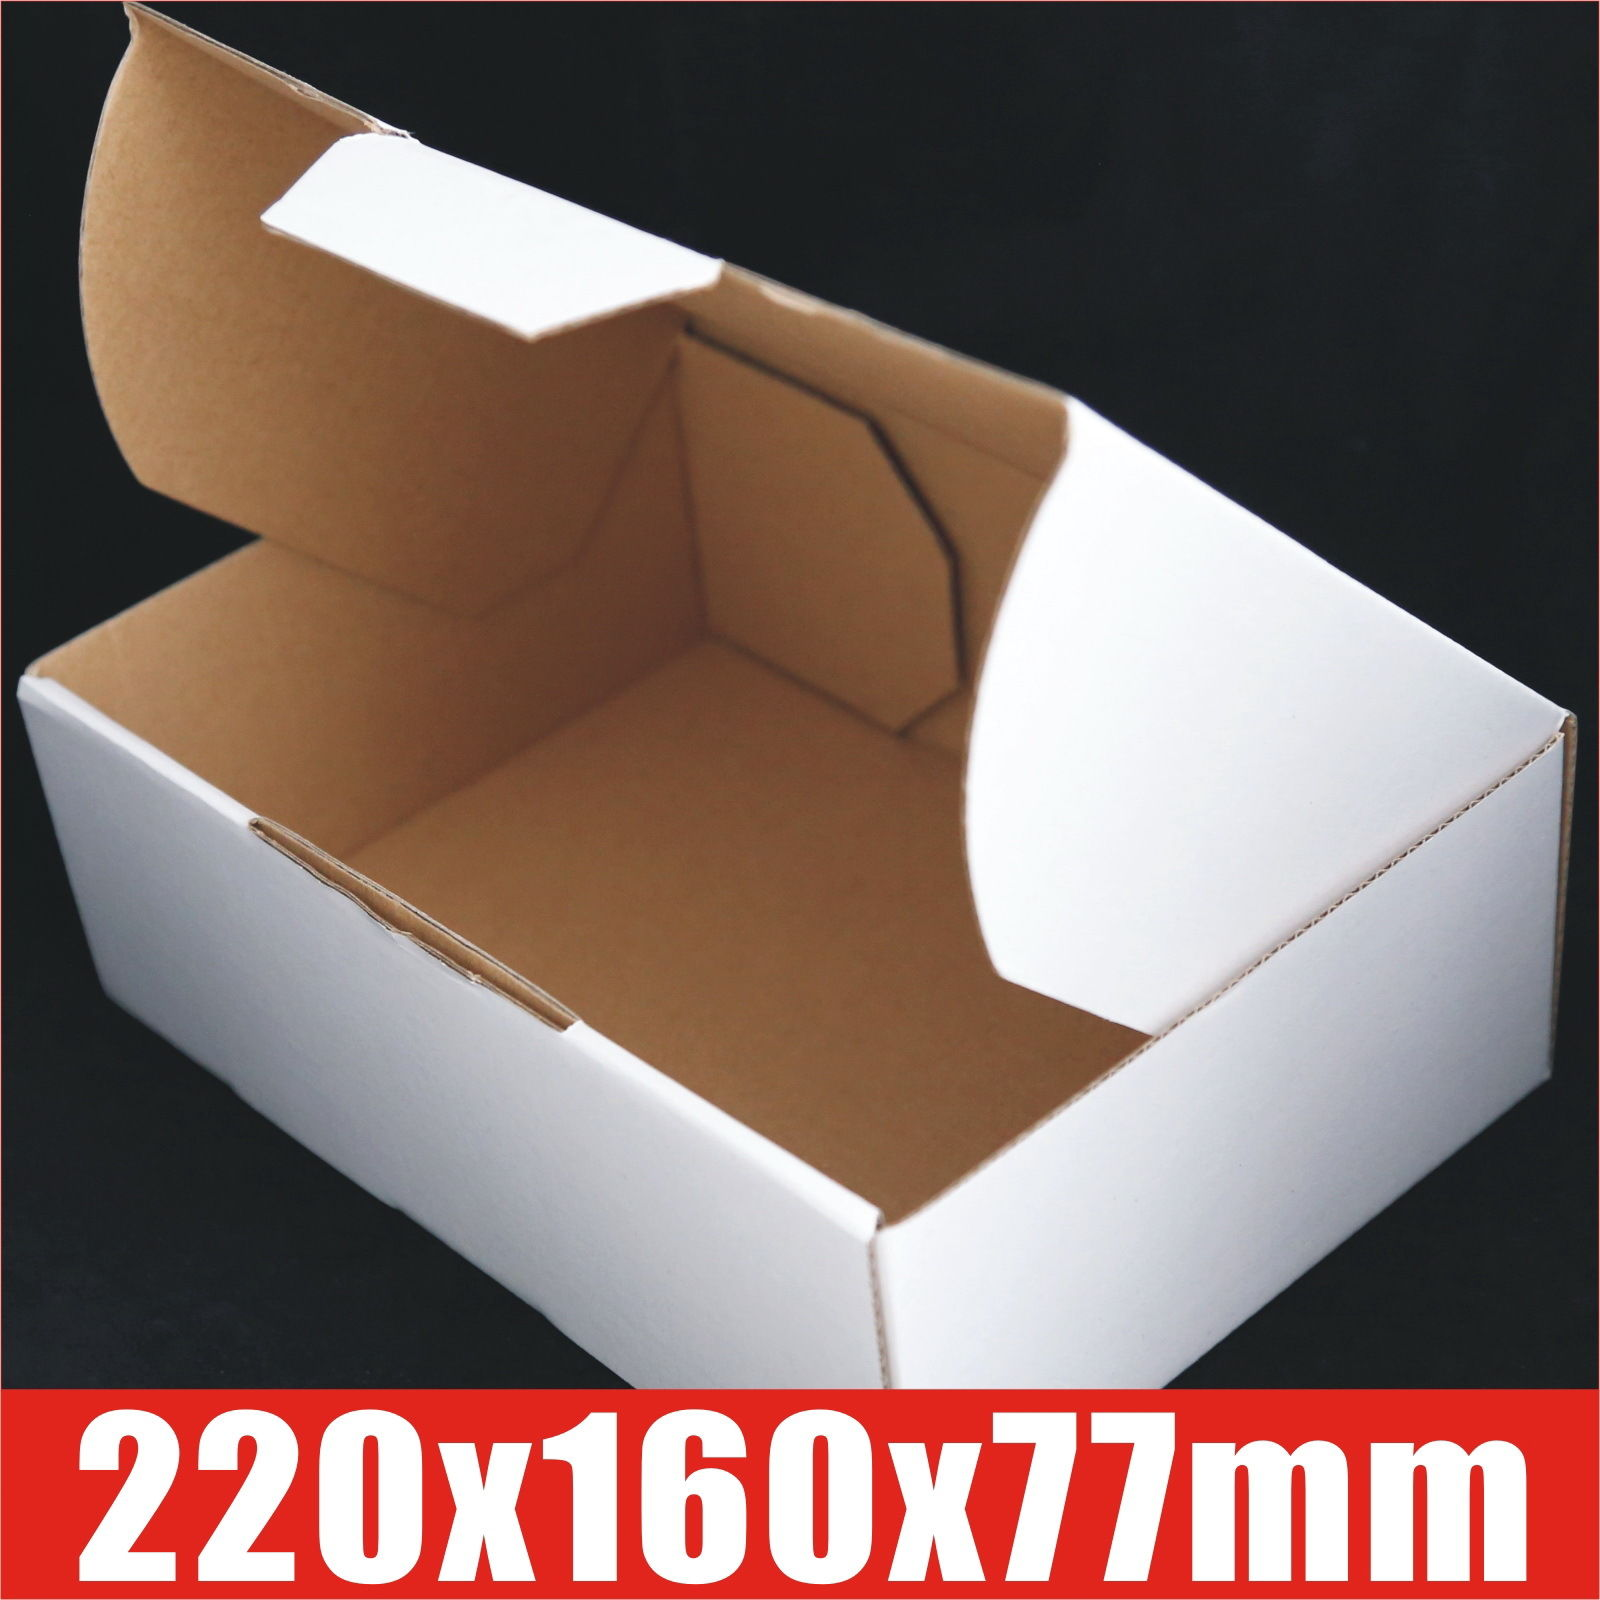 Buy 220x160x77mm Cardboard Box